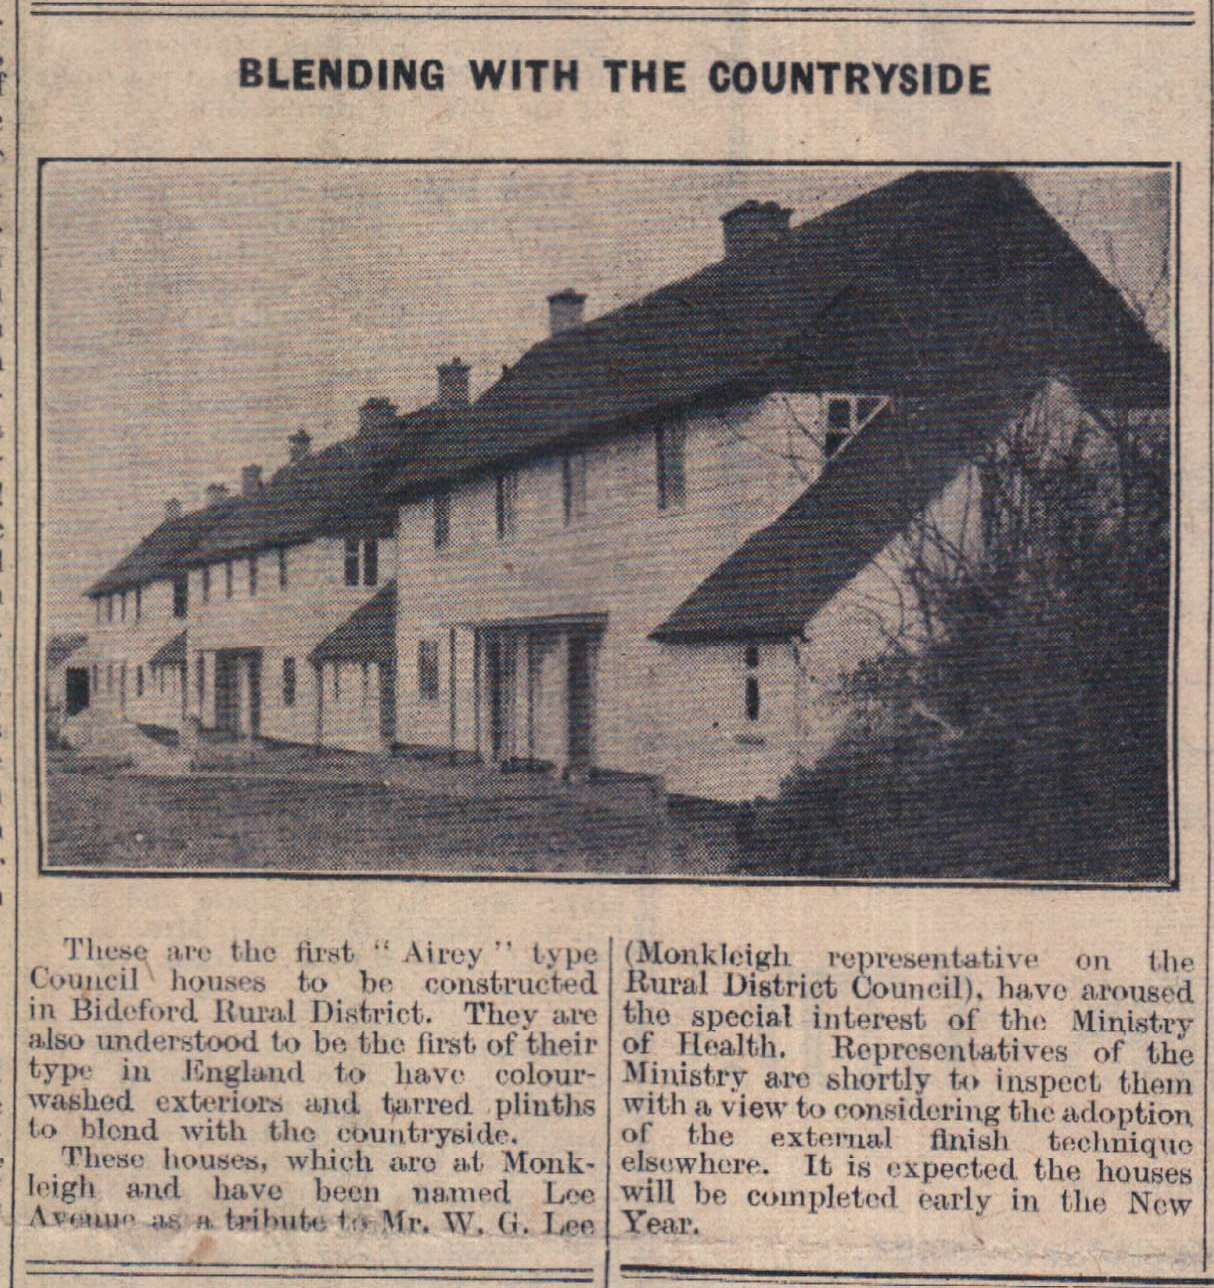 6 January 1948 Airey type Council houses